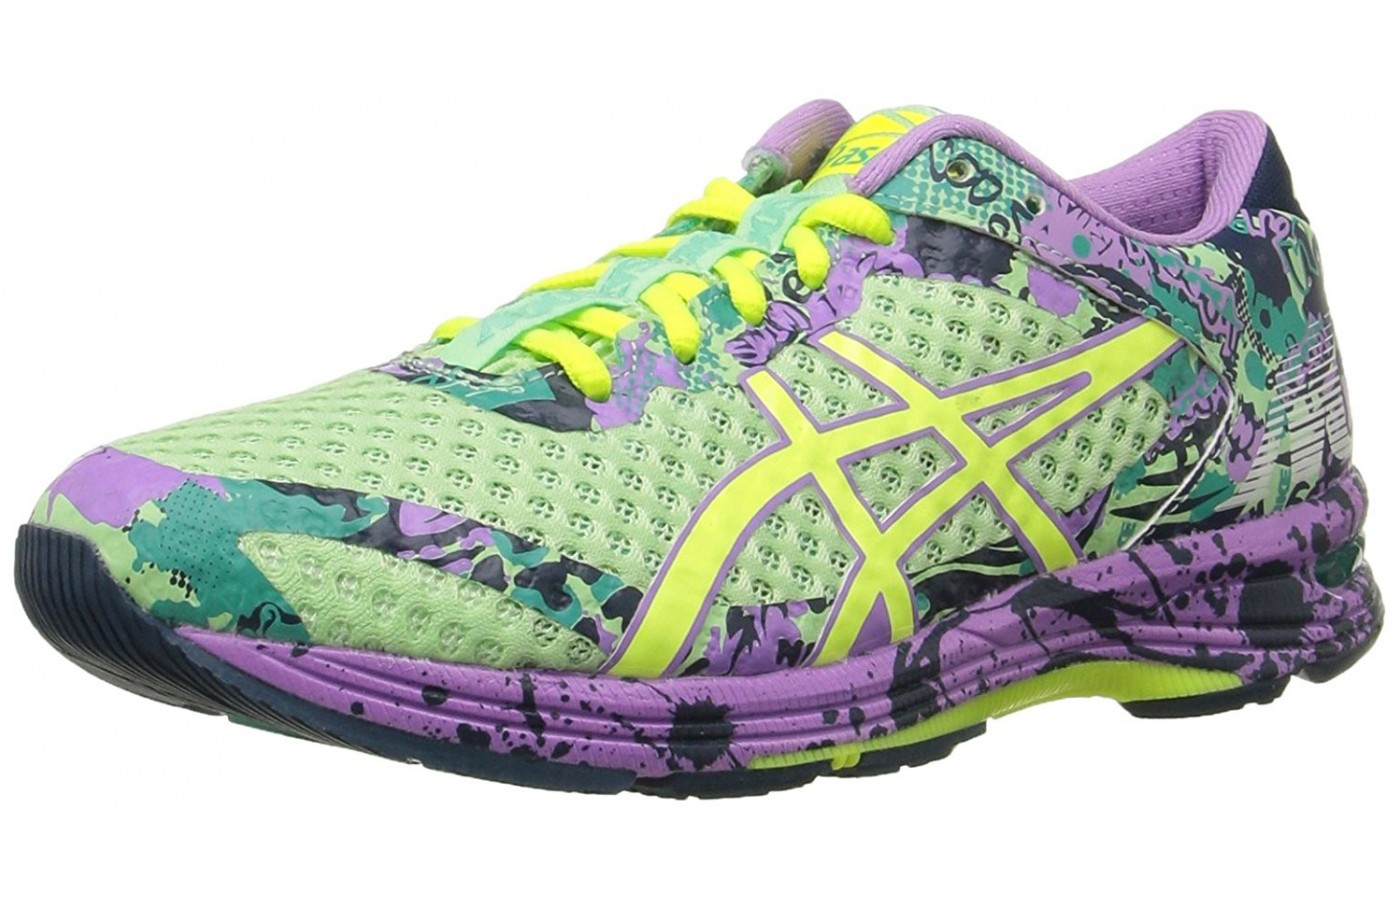 Is Brighter Better? Testing Out the Asics GEL Noosa Tri 8